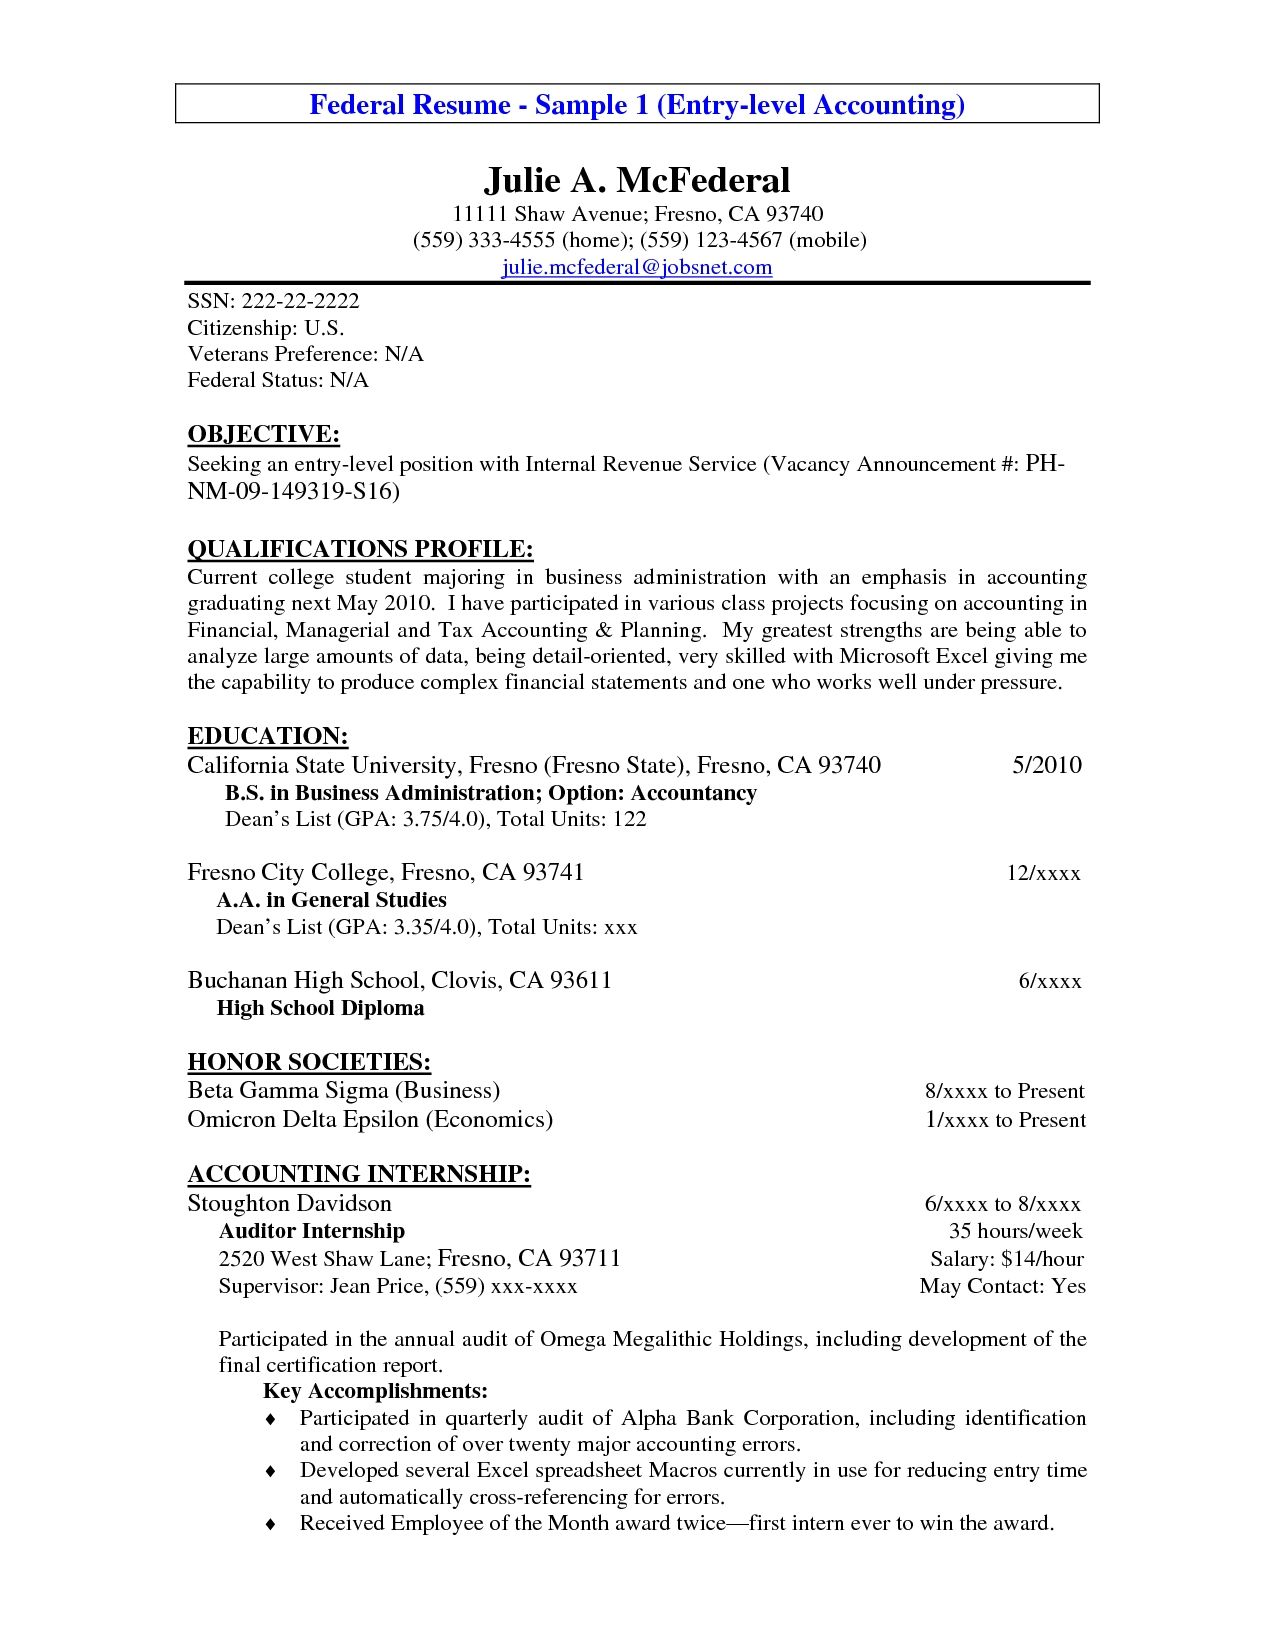 Accounting Student Resume Entry Level Resume Example Entry Level Accounting Resume Sample